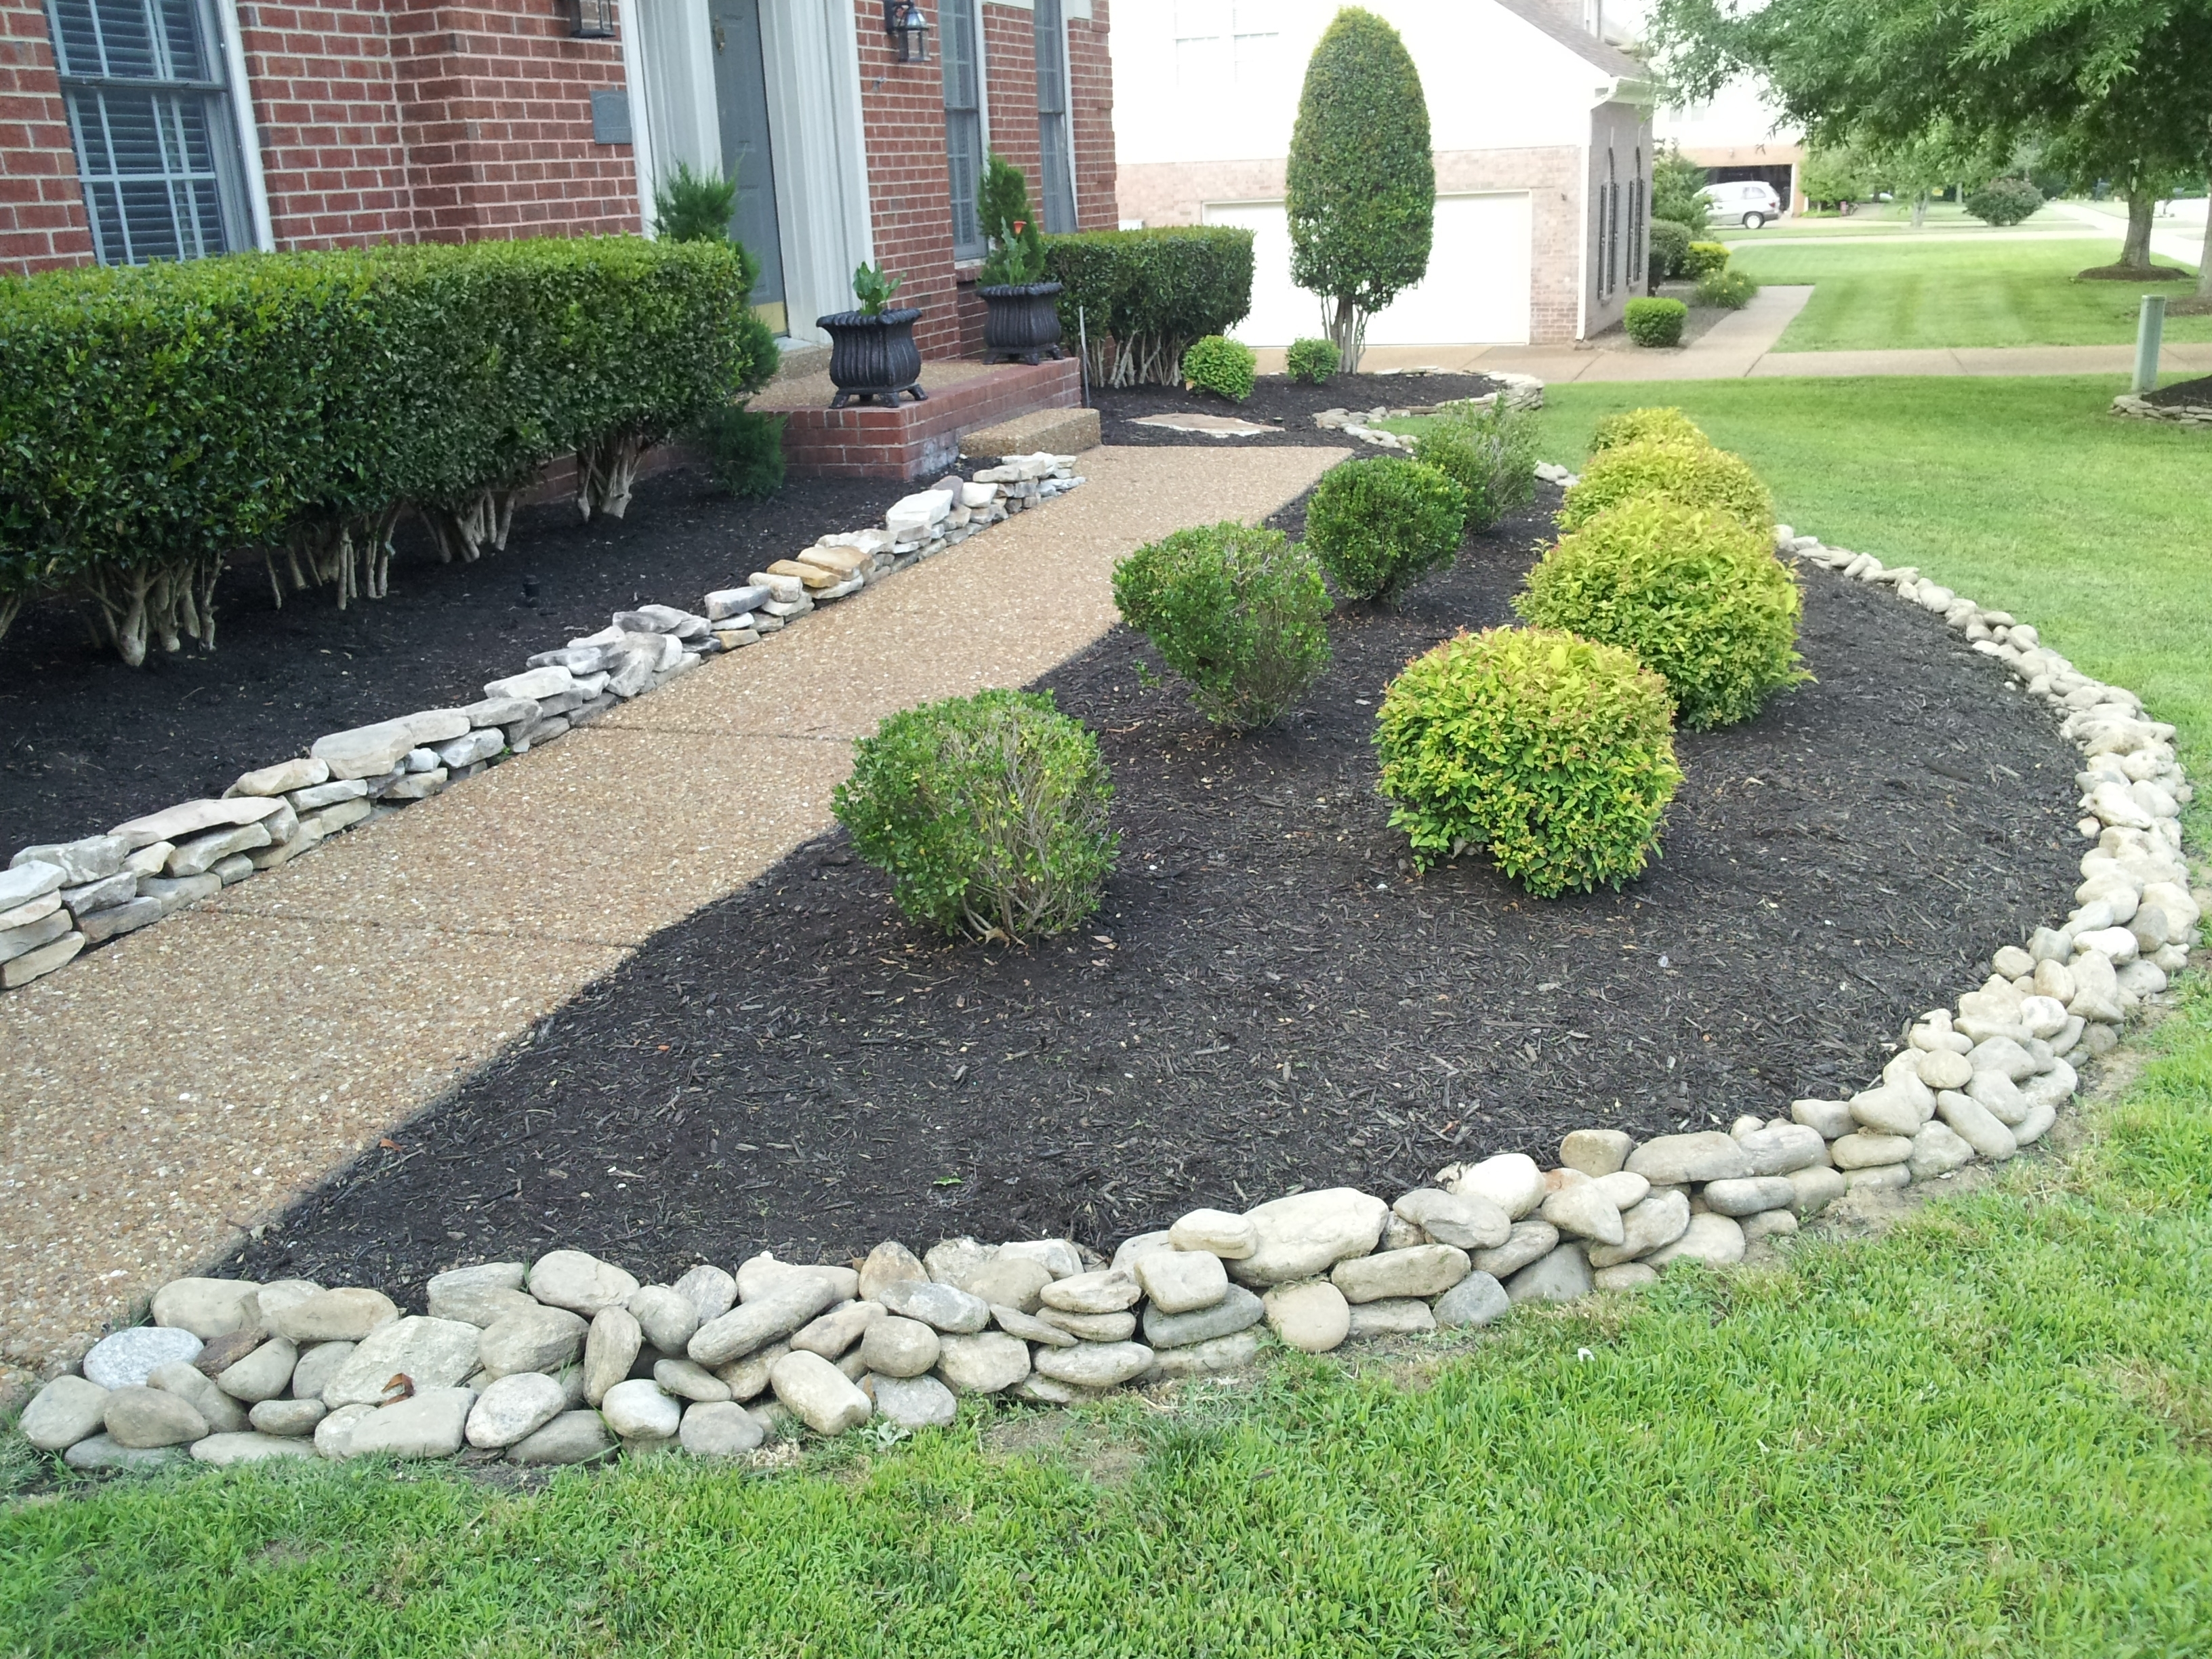 Image of: Landscape Types Of Landscaping Rock With Gravel Decorative Intended For Gravel Landscaping Ideas Gravel Landscaping Ideas Fresh